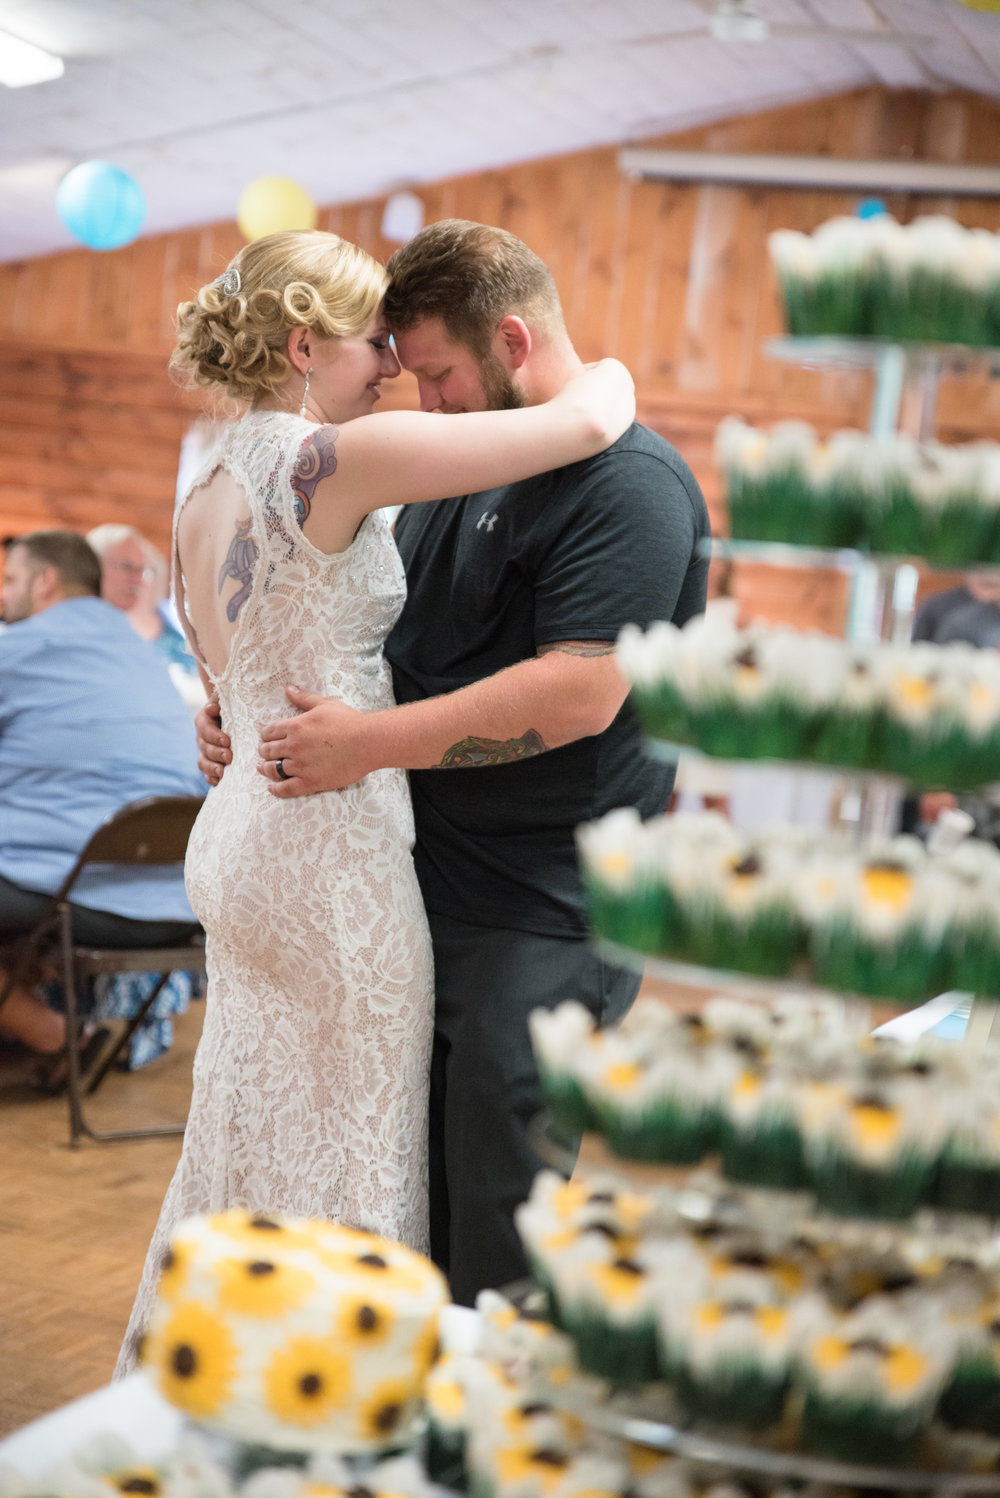 Lisa and Nate, weddings, Fall, Autumn, marriage, nature, October, Brian, Latham, wedding photography, rustic, woodsy, woods, DIY, Connecticut, Massachusetts, lake, sunflower, pond, yellow, simple, gorgeous, blue, reception, dance